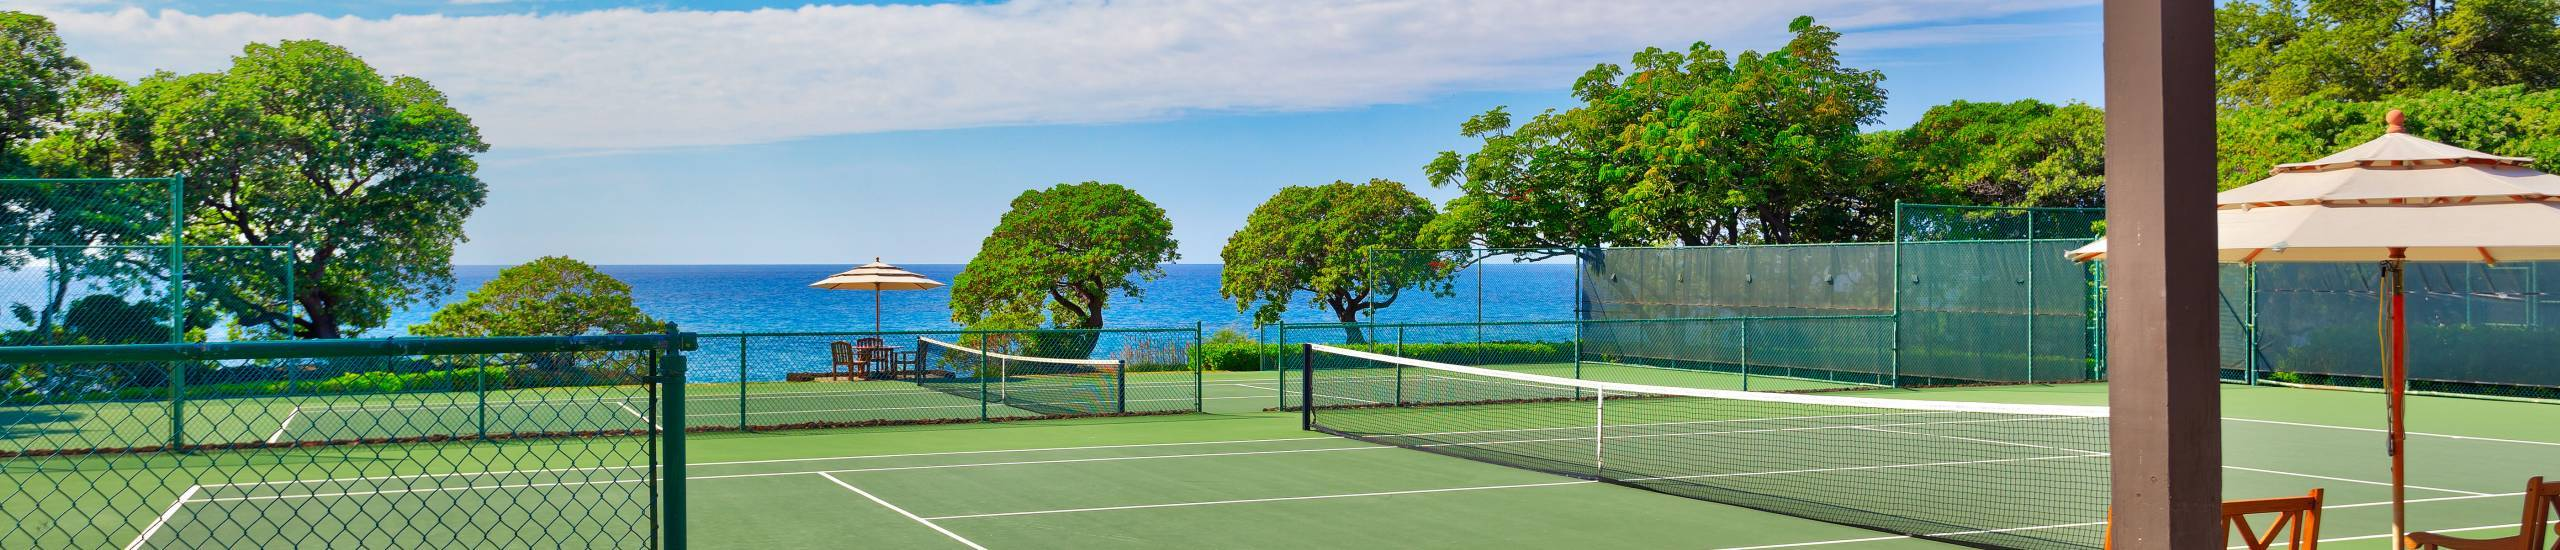 Mauna Kea Resort Tennis Courts with Ocean View